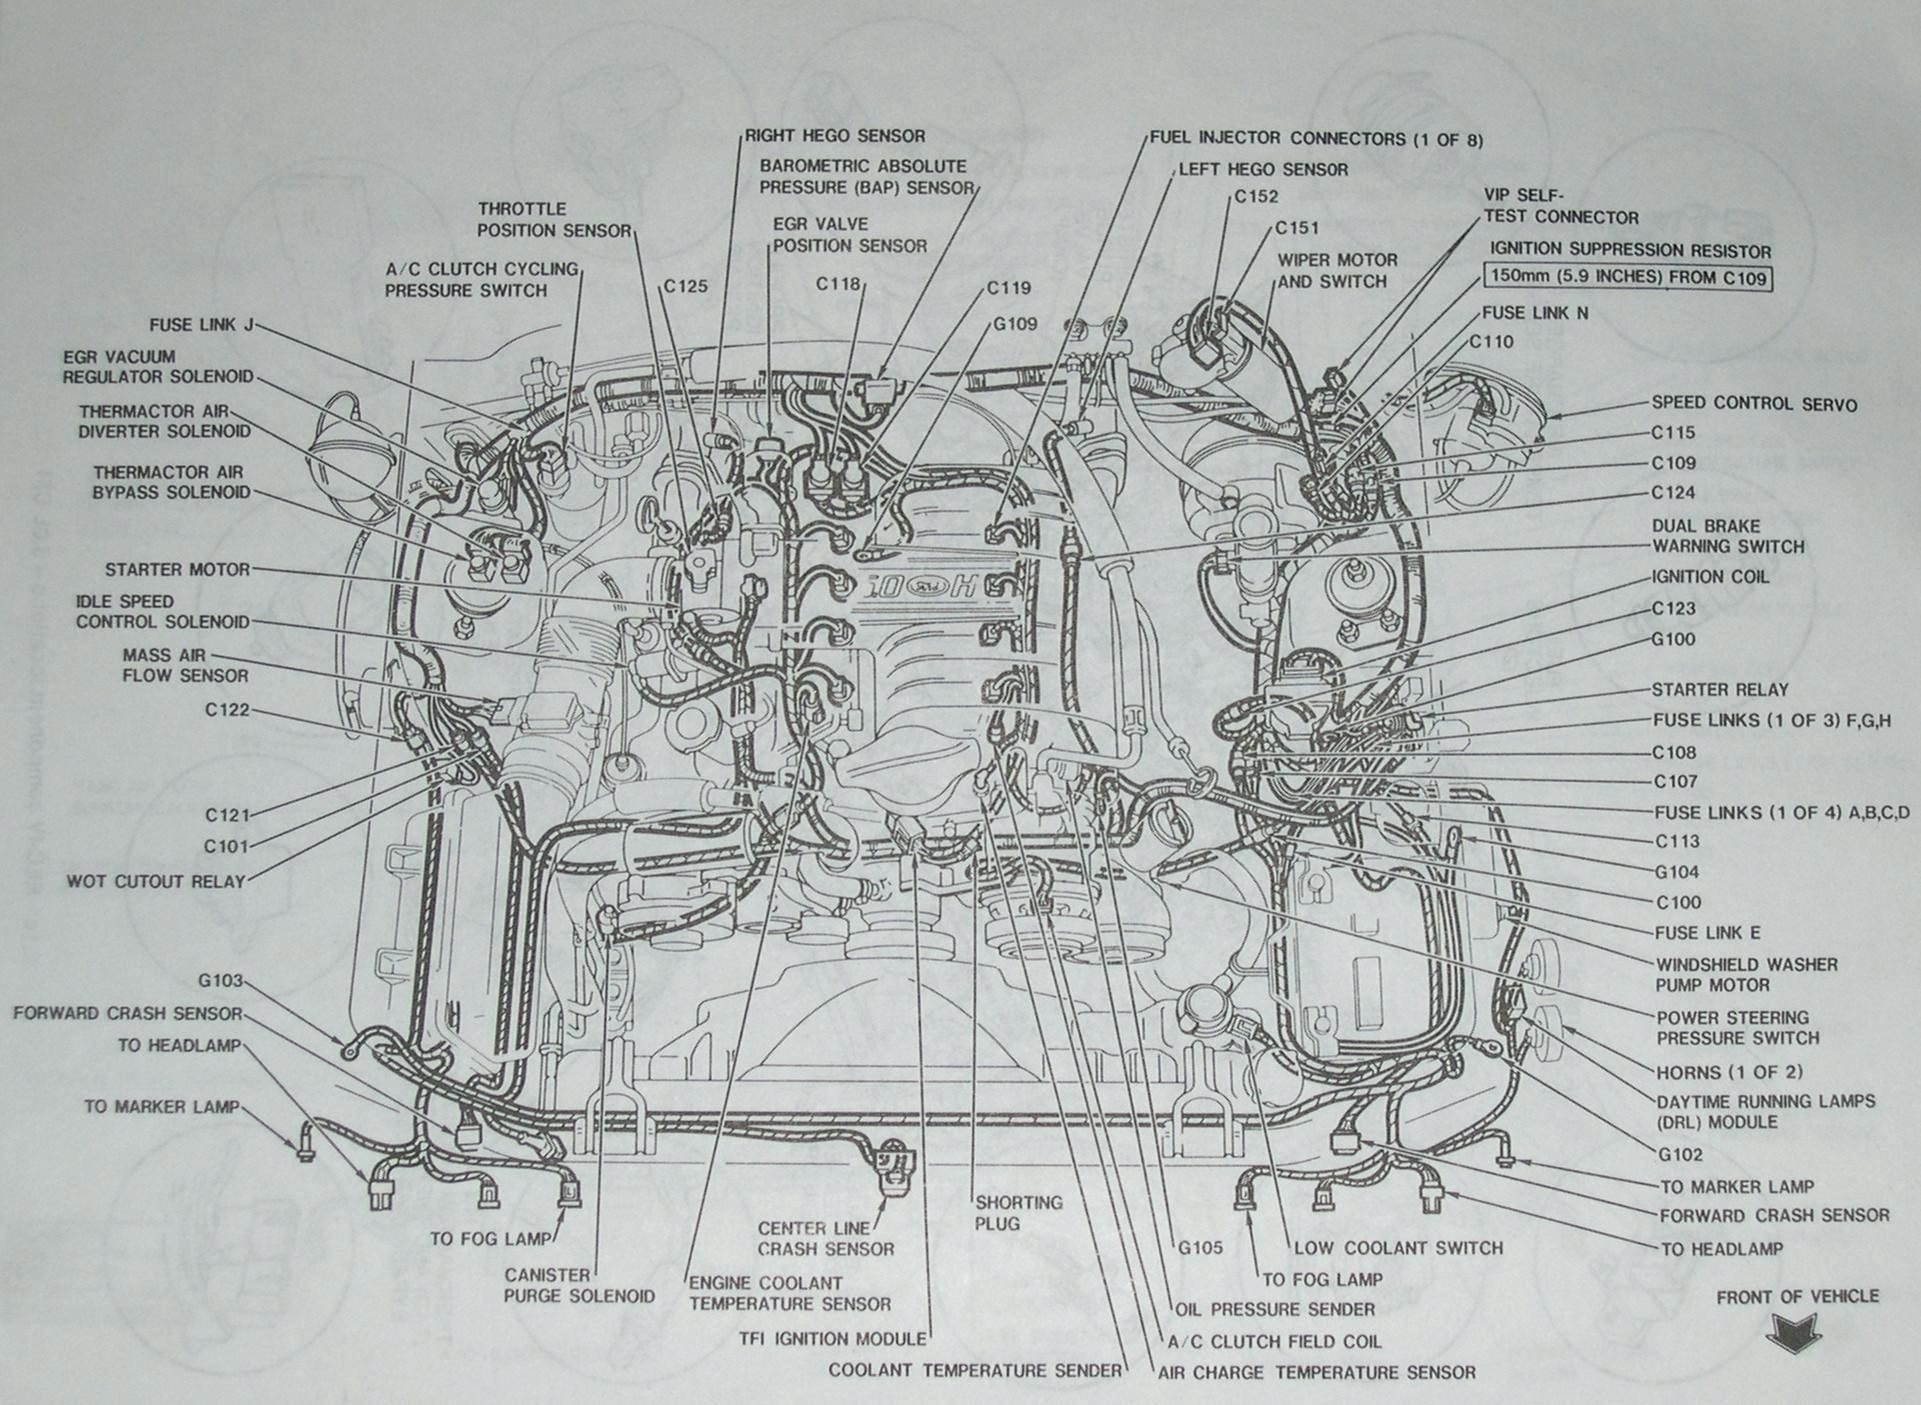 hight resolution of 1992 mustang 5 0 engine wiring harness schema diagram database mustang 5 0 engine diagram